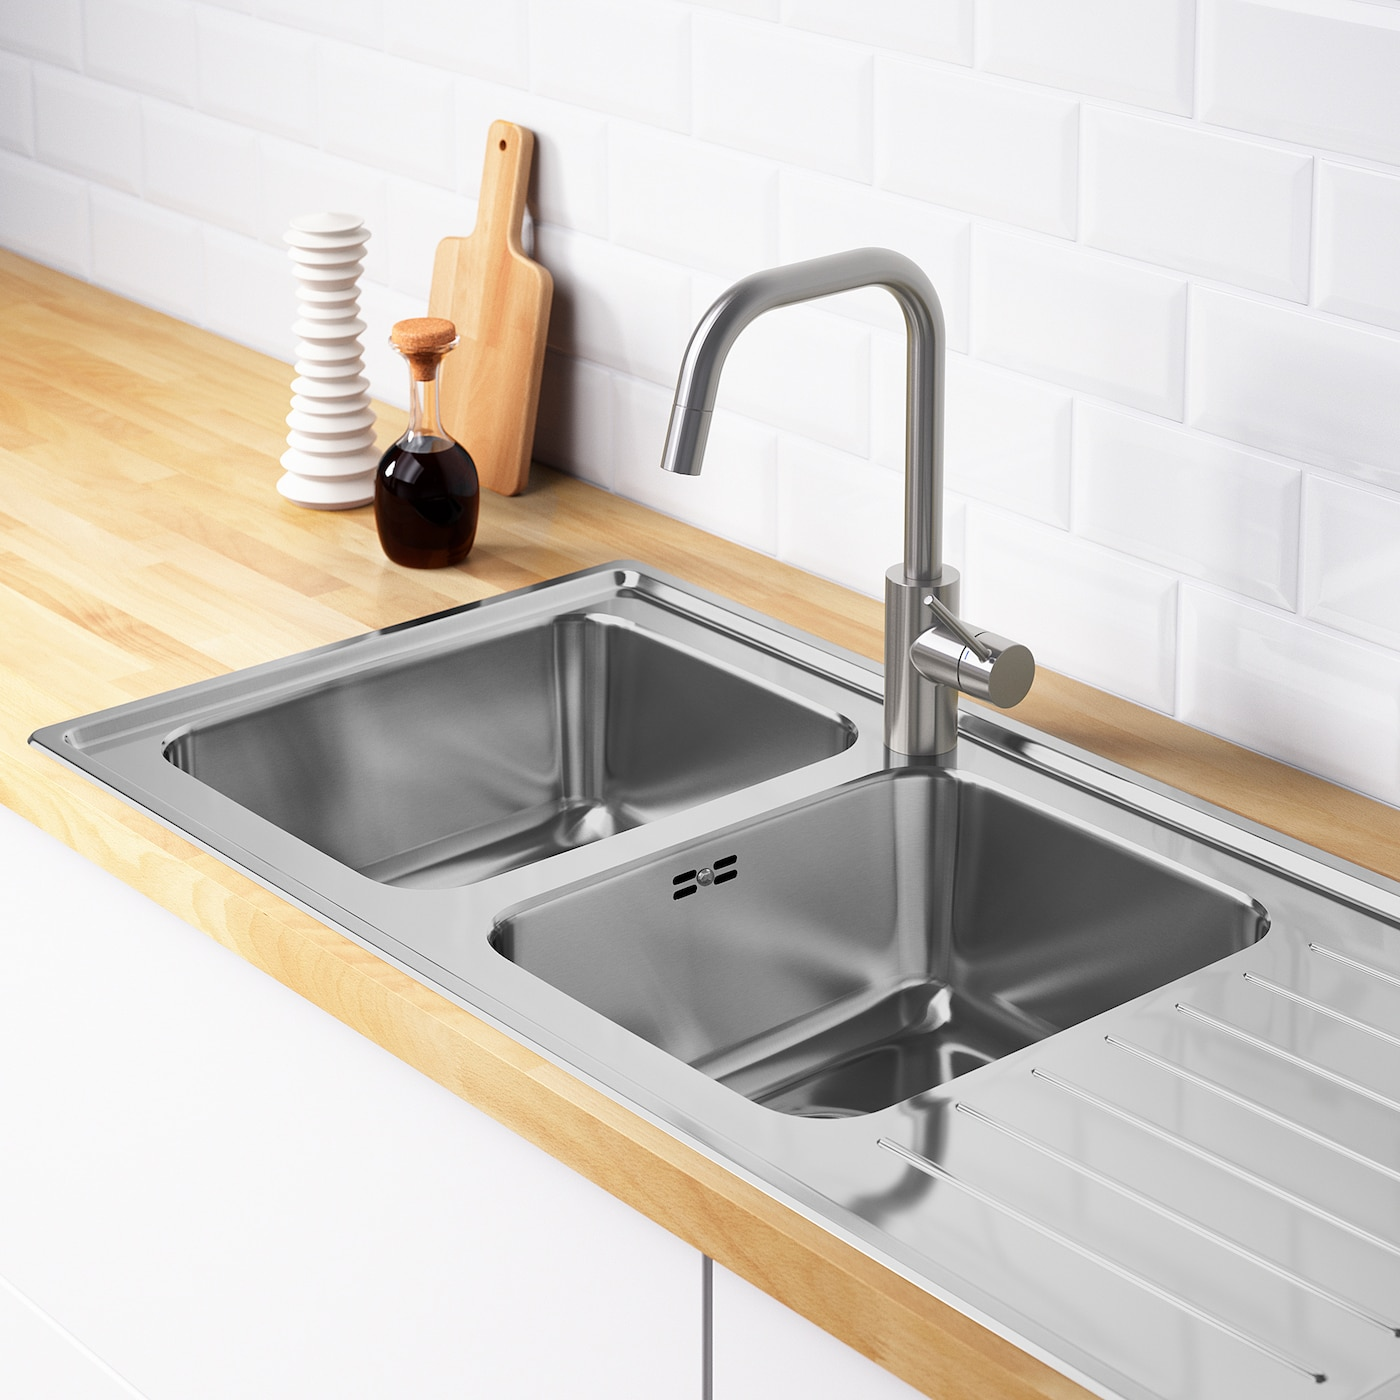 VATTUDALEN Inset sink, 10 bowls with drainboard - stainless steel 10x10 cm